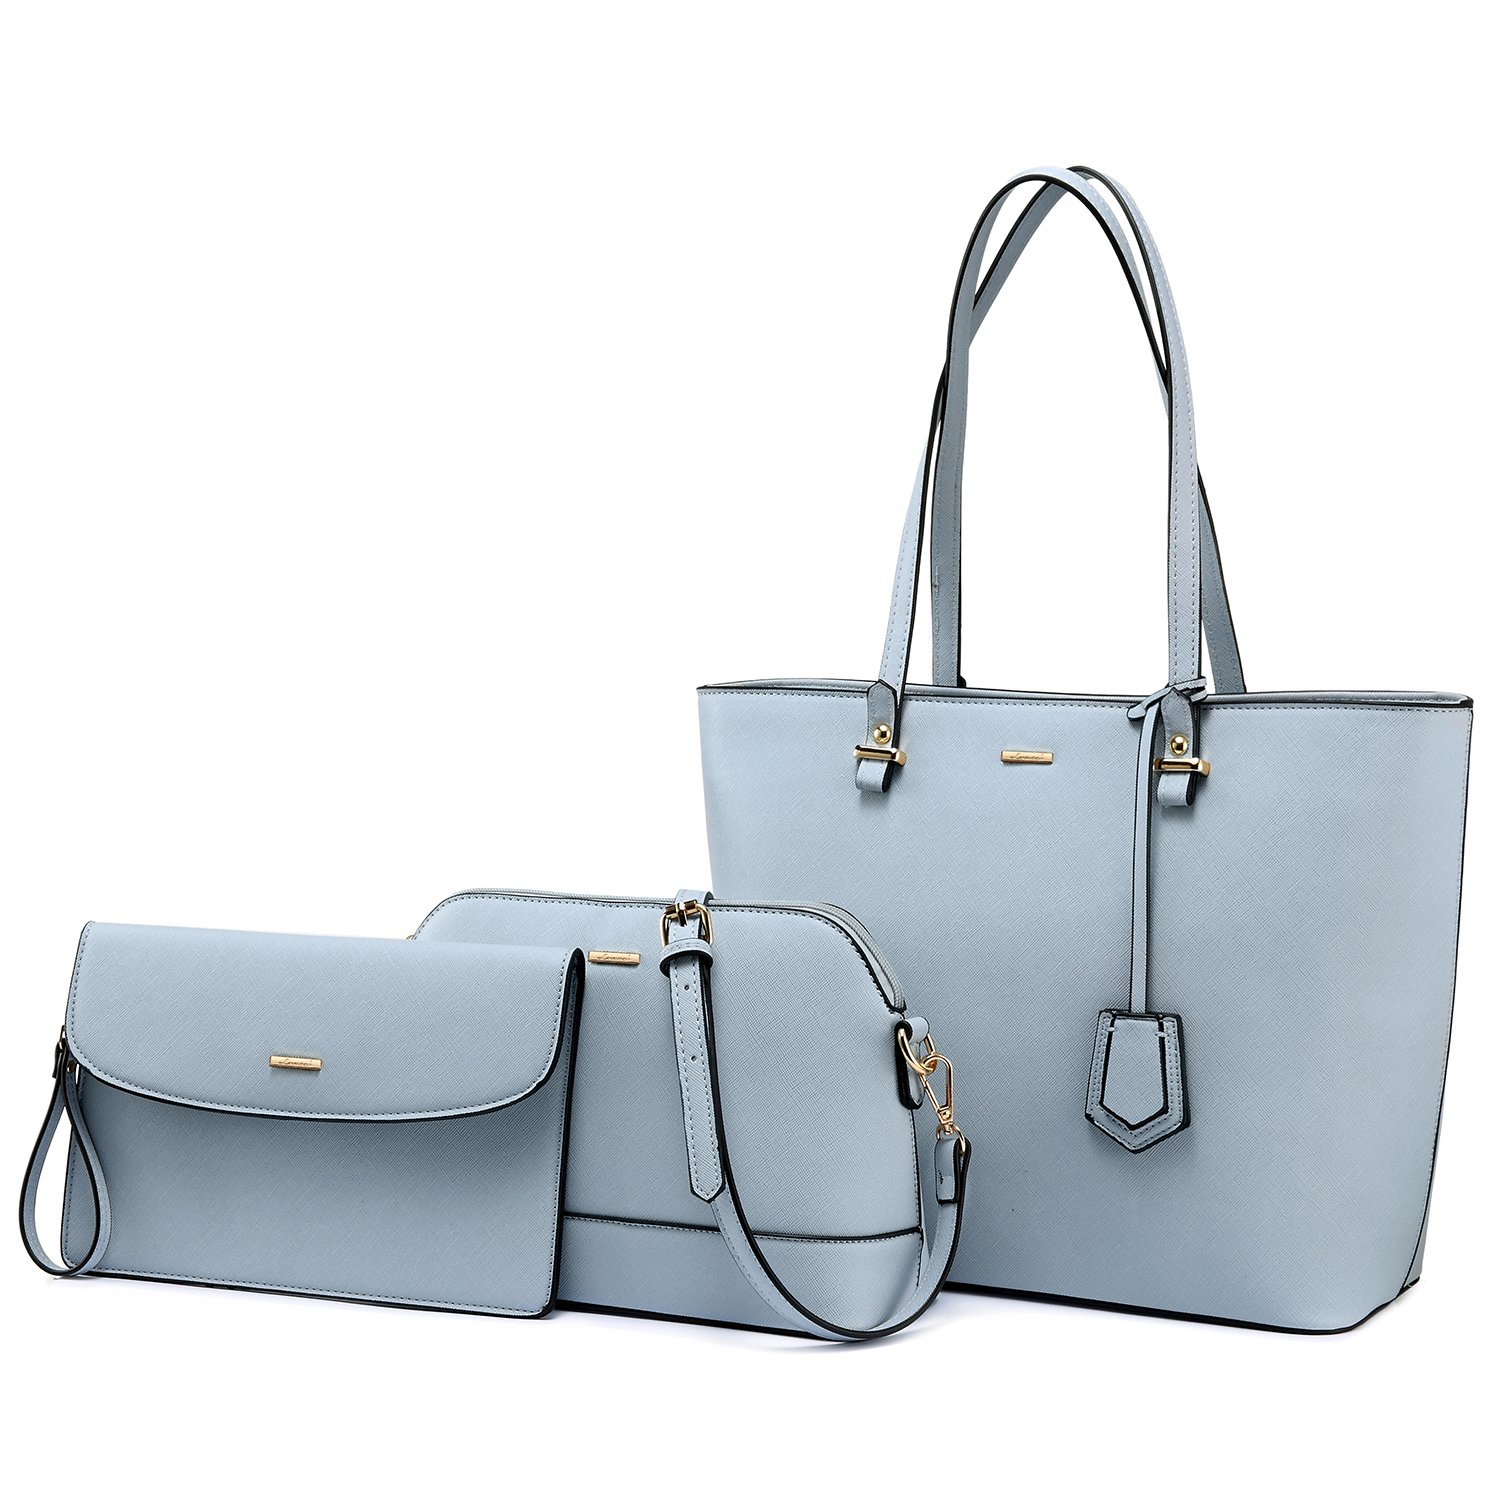 Purses and Handbags Designer Handbags for Women Tote + Crossbody + Envelope 3 Purses Set (Gray Blue) by LOVEVOOK (Image #1)